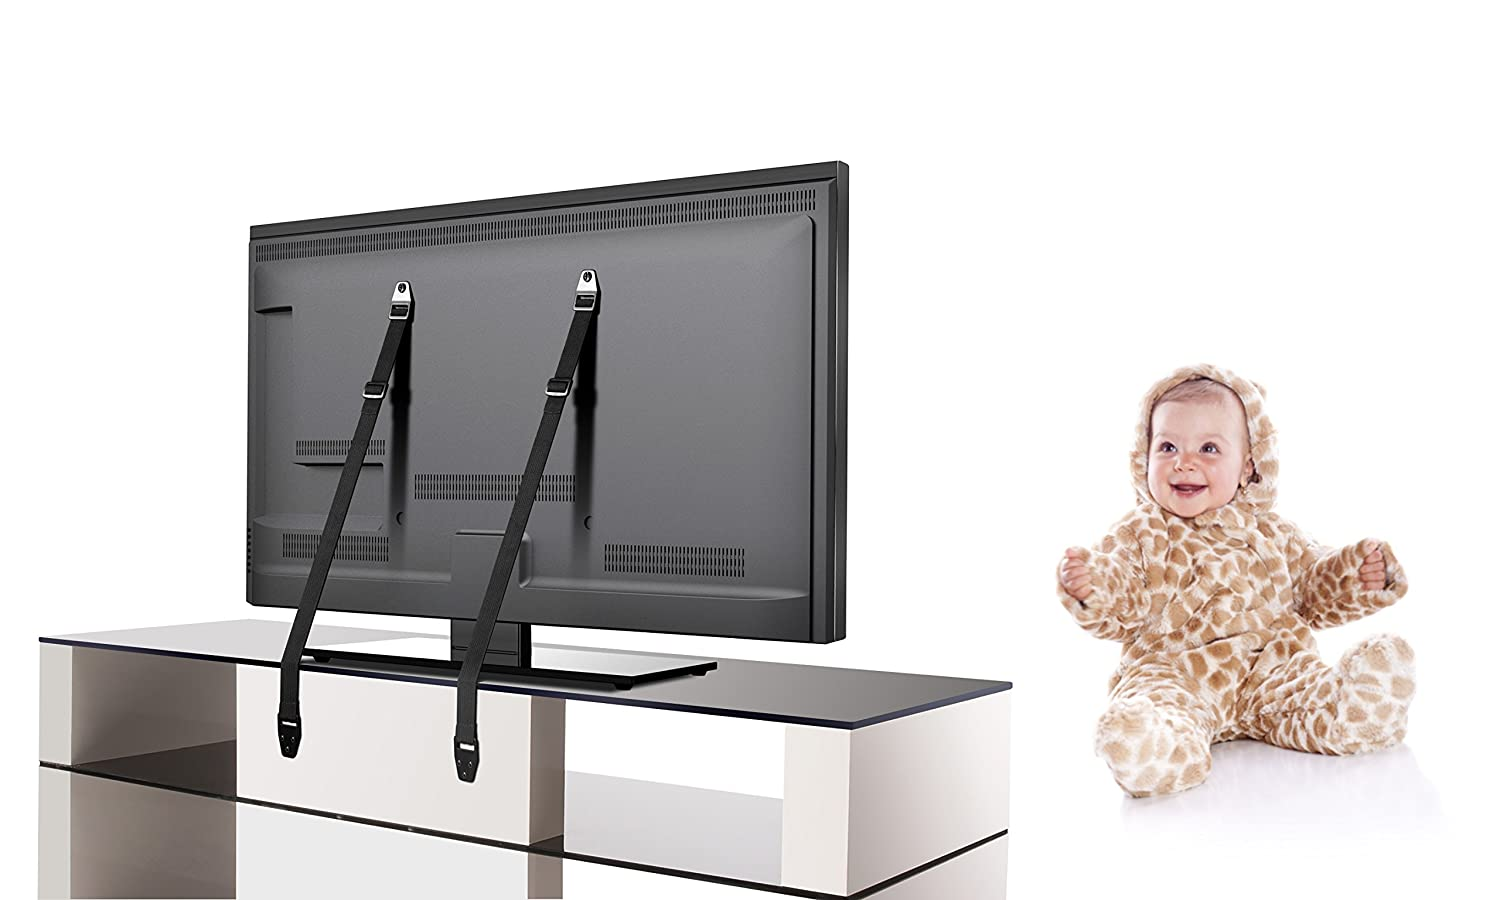 2 pcs + screws Furniture and All Other Equipment TV Safety Strap // Anti-tip TV Strap Protect Your Flat Screen TV Premium Bundle by Teddykins Order Safety Wall Strap // Mount for a Safer Home!